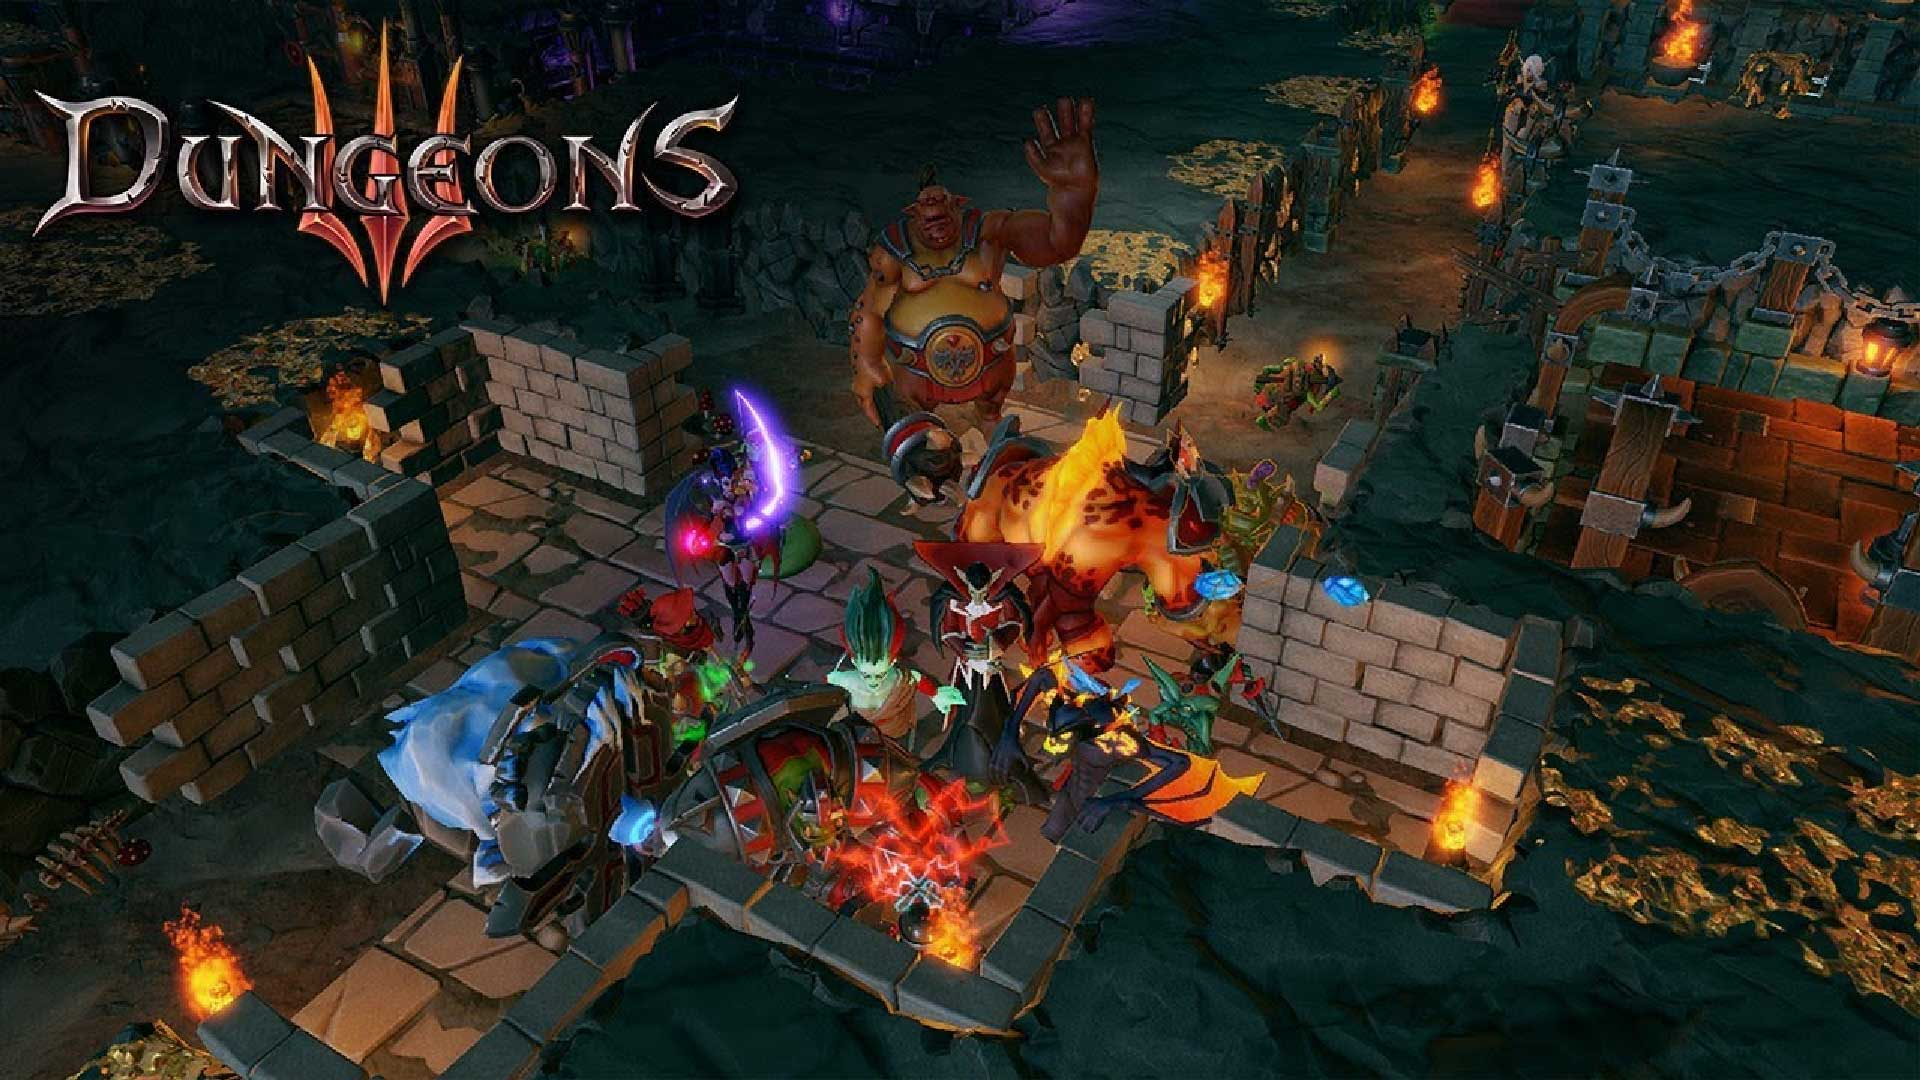 epic games store dungeons 3 new